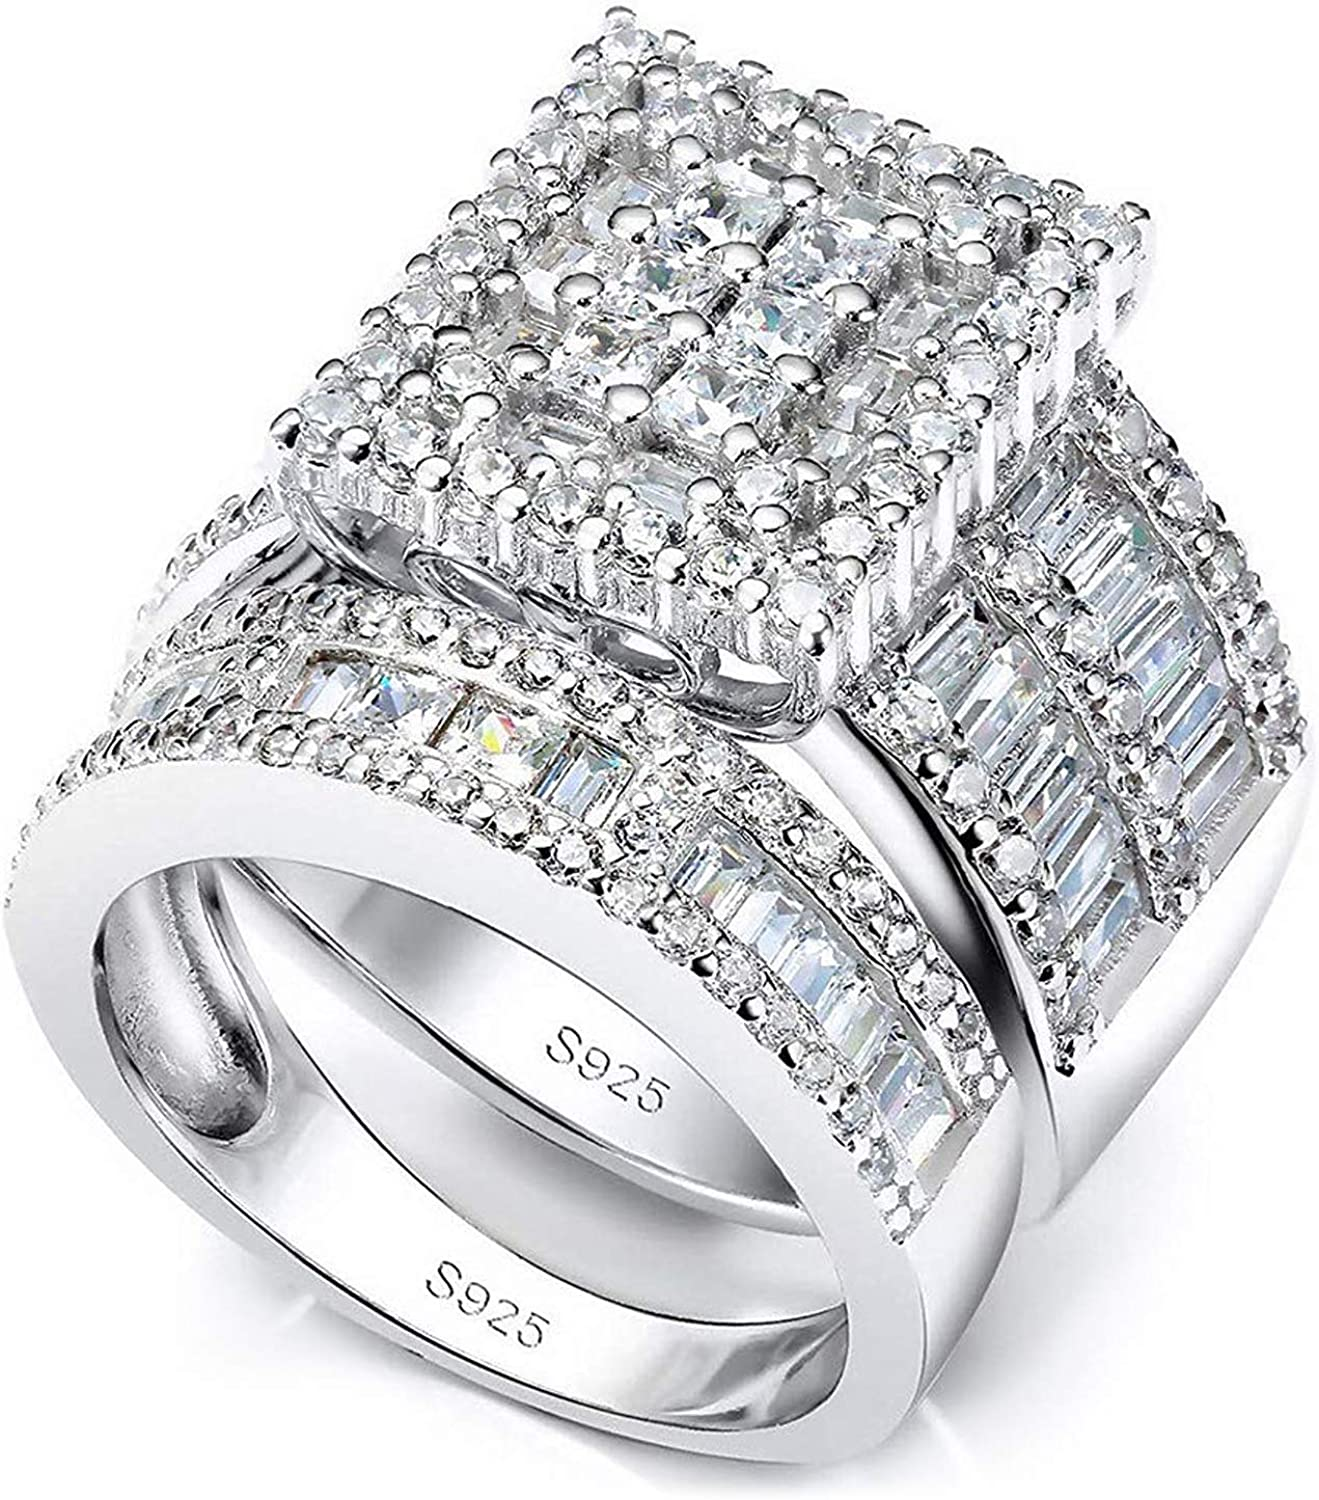 Pophylis 55% OFF Platinum Selling and selling Over Sterling Silver Rings Womens Big S Bridal